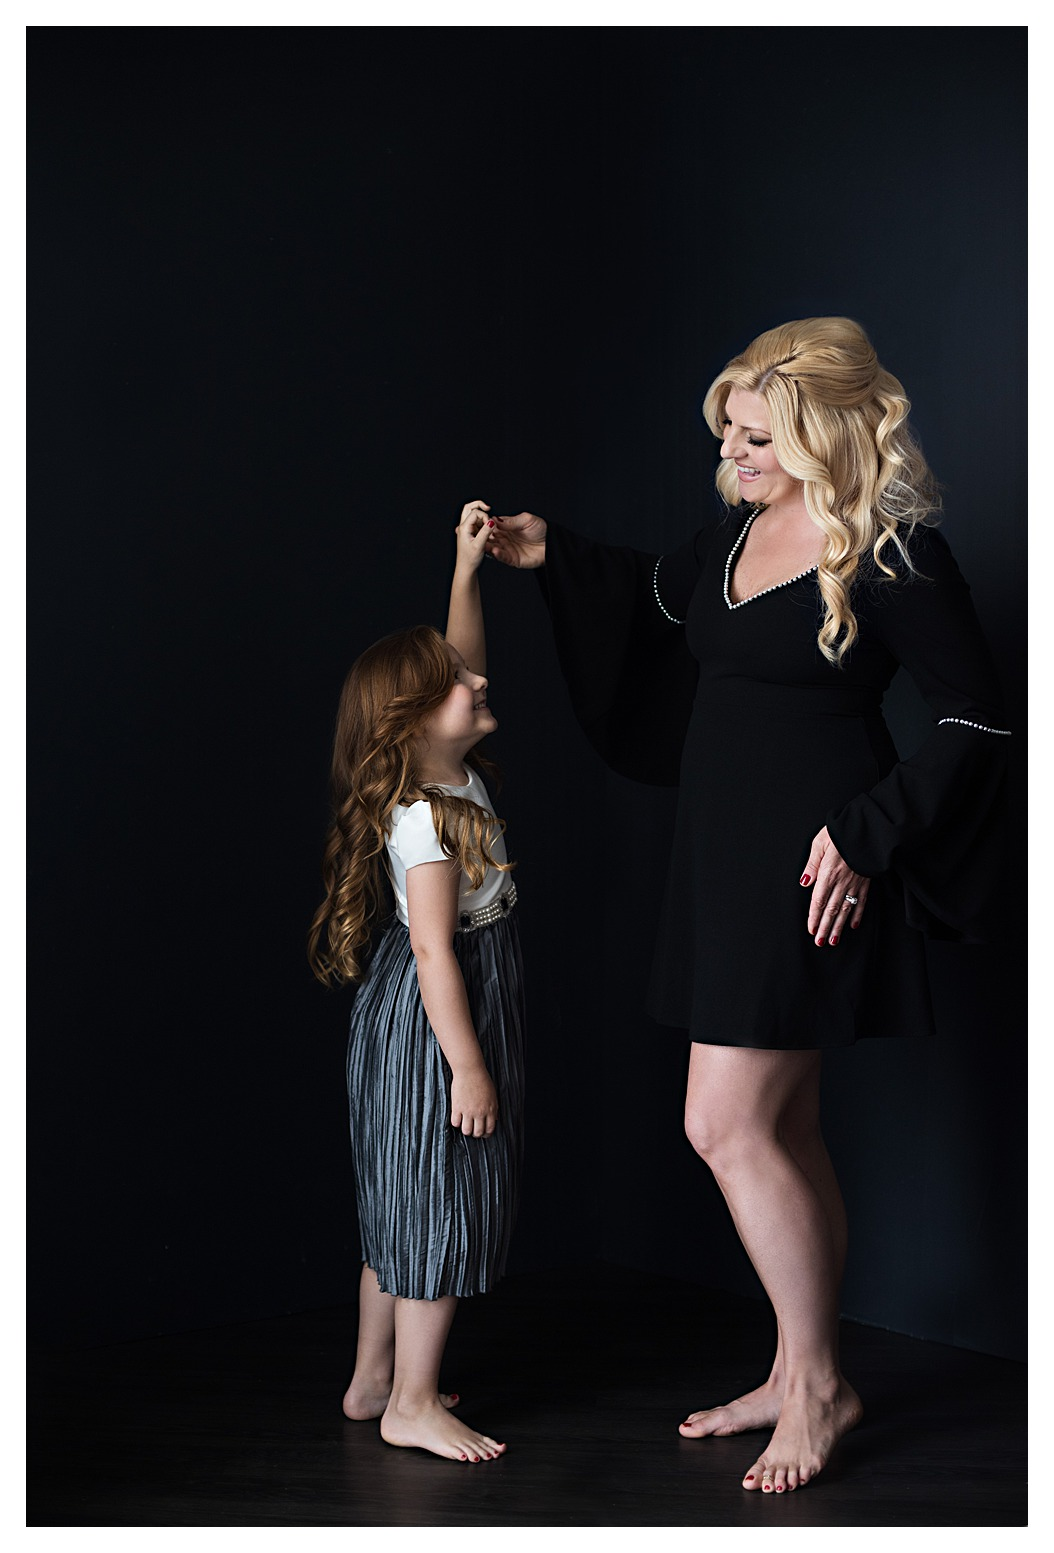 Tessa_marie_photography_mother_daughter_womens_portrait_family_photography_atlanta_0098.jpg